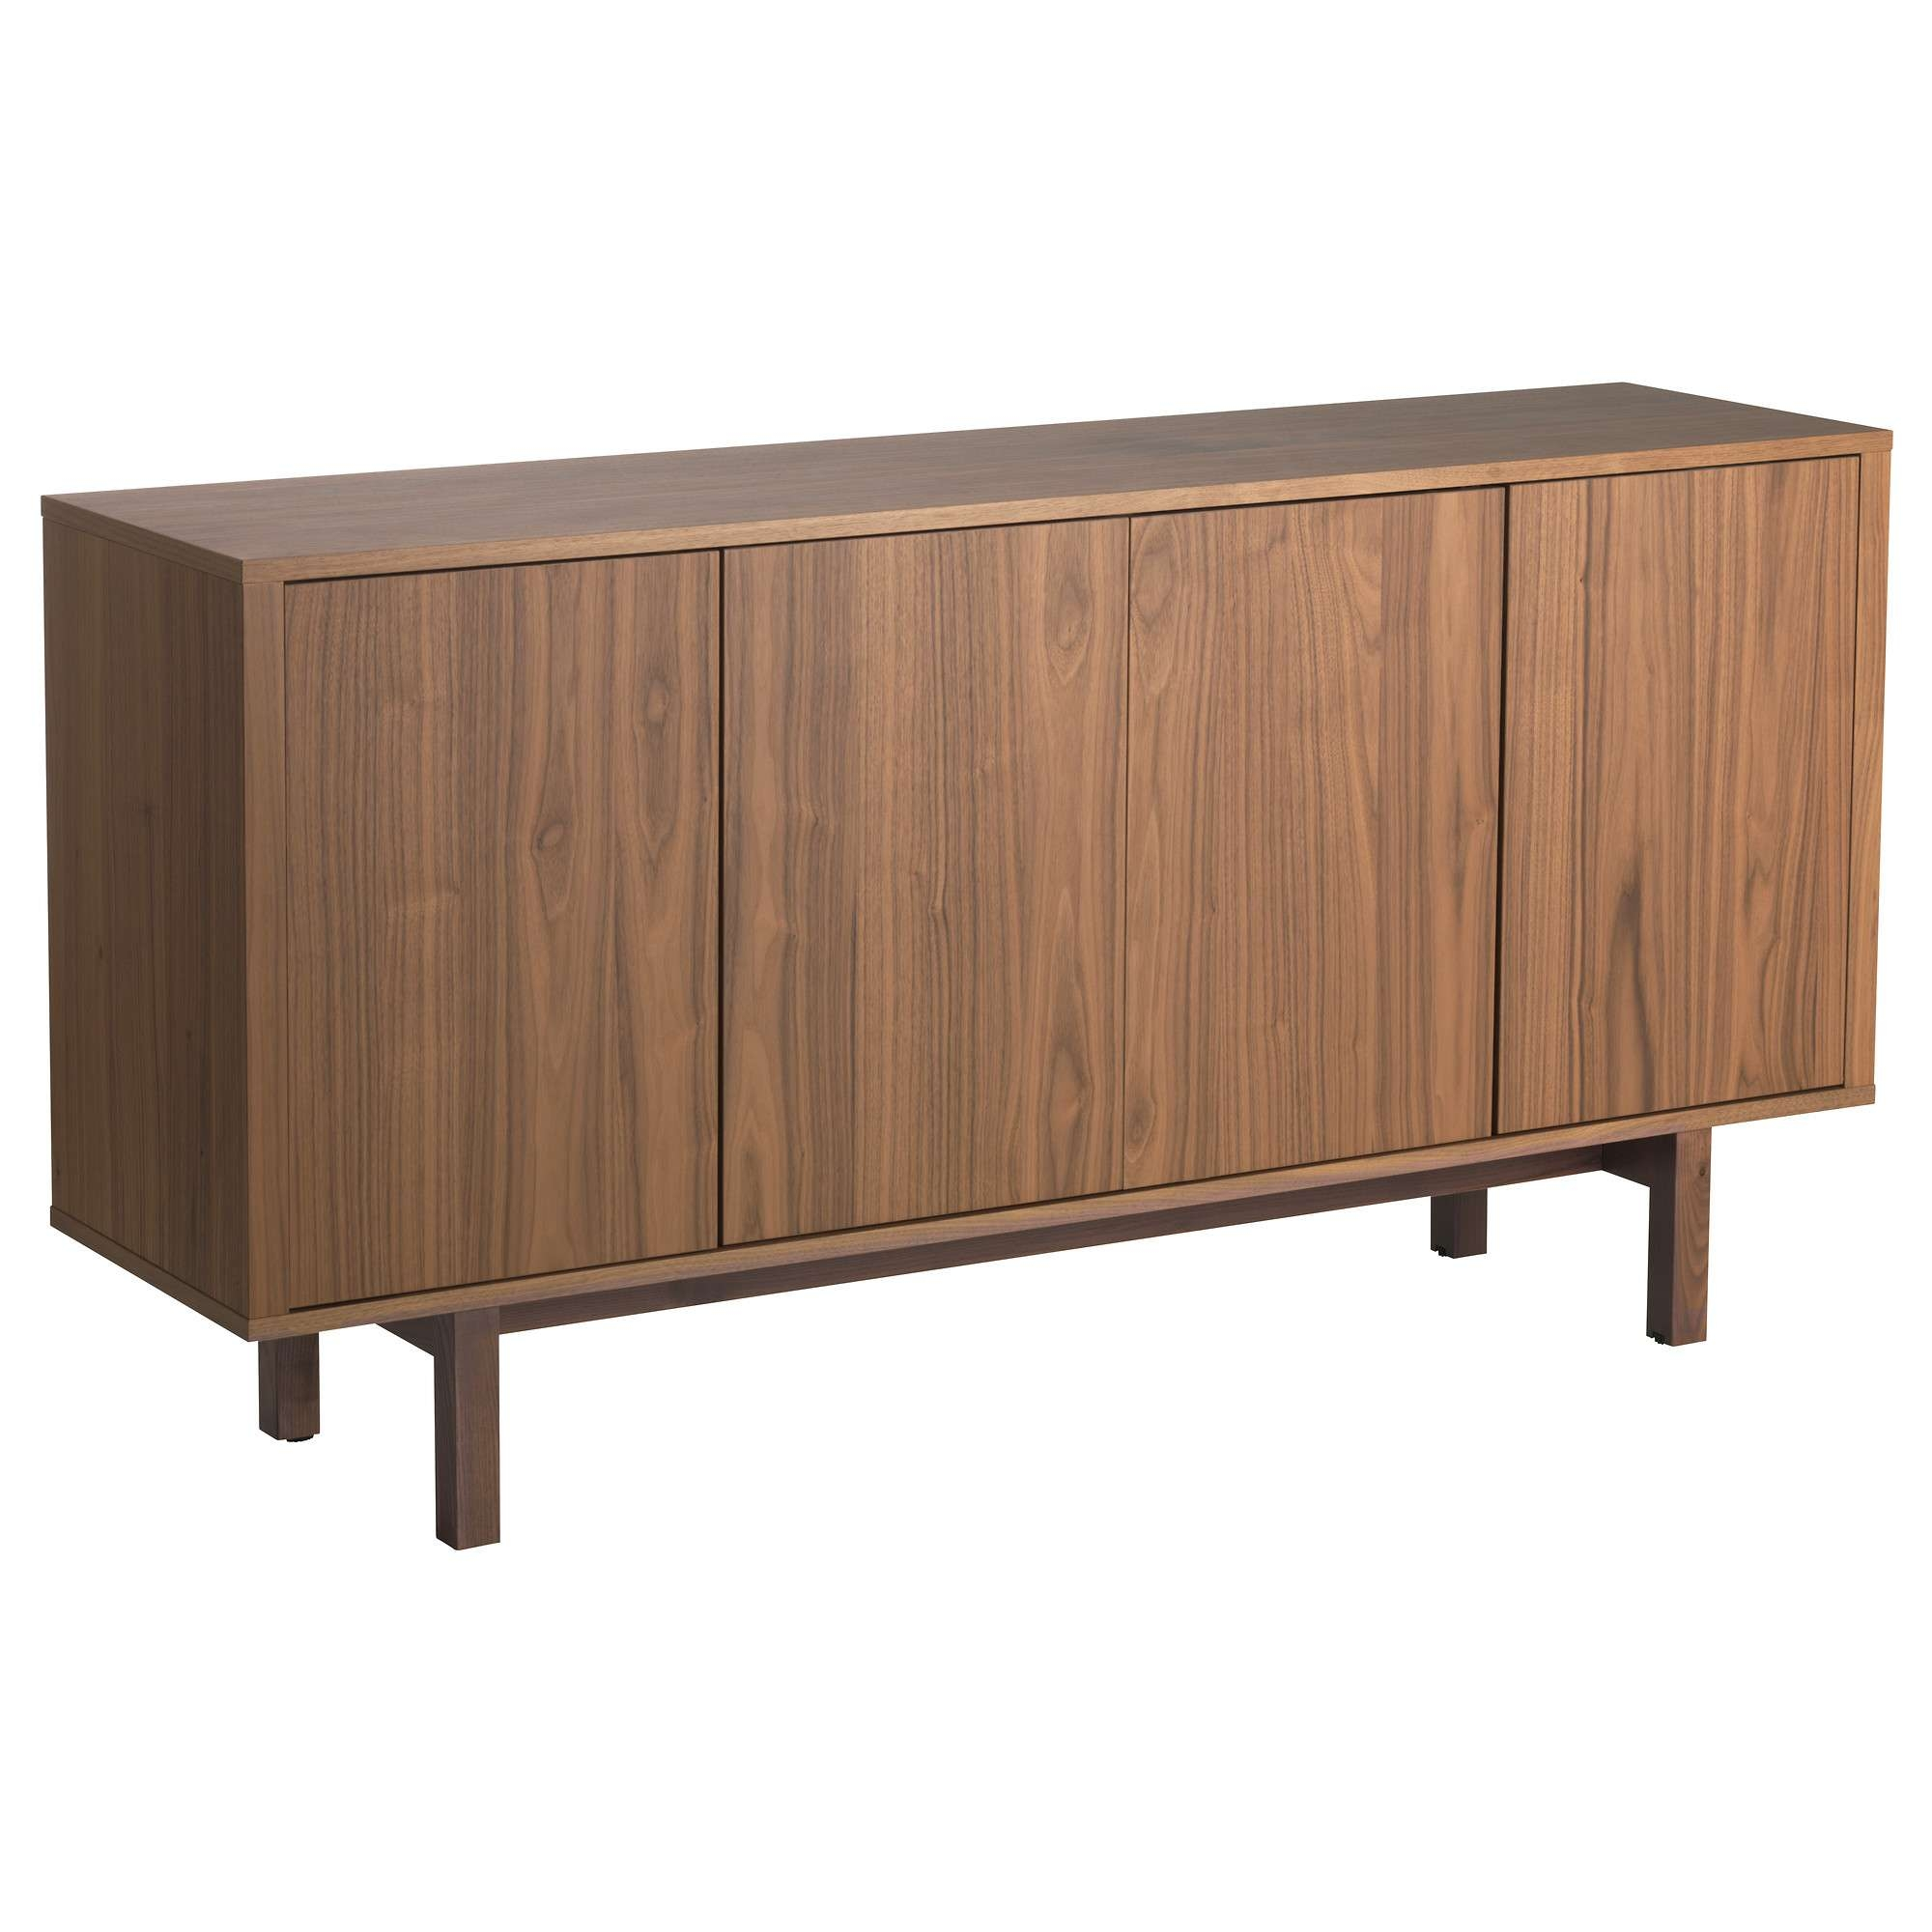 Buffet Tables & Sideboards – Ikea For Slim Oak Sideboards (View 1 of 20)